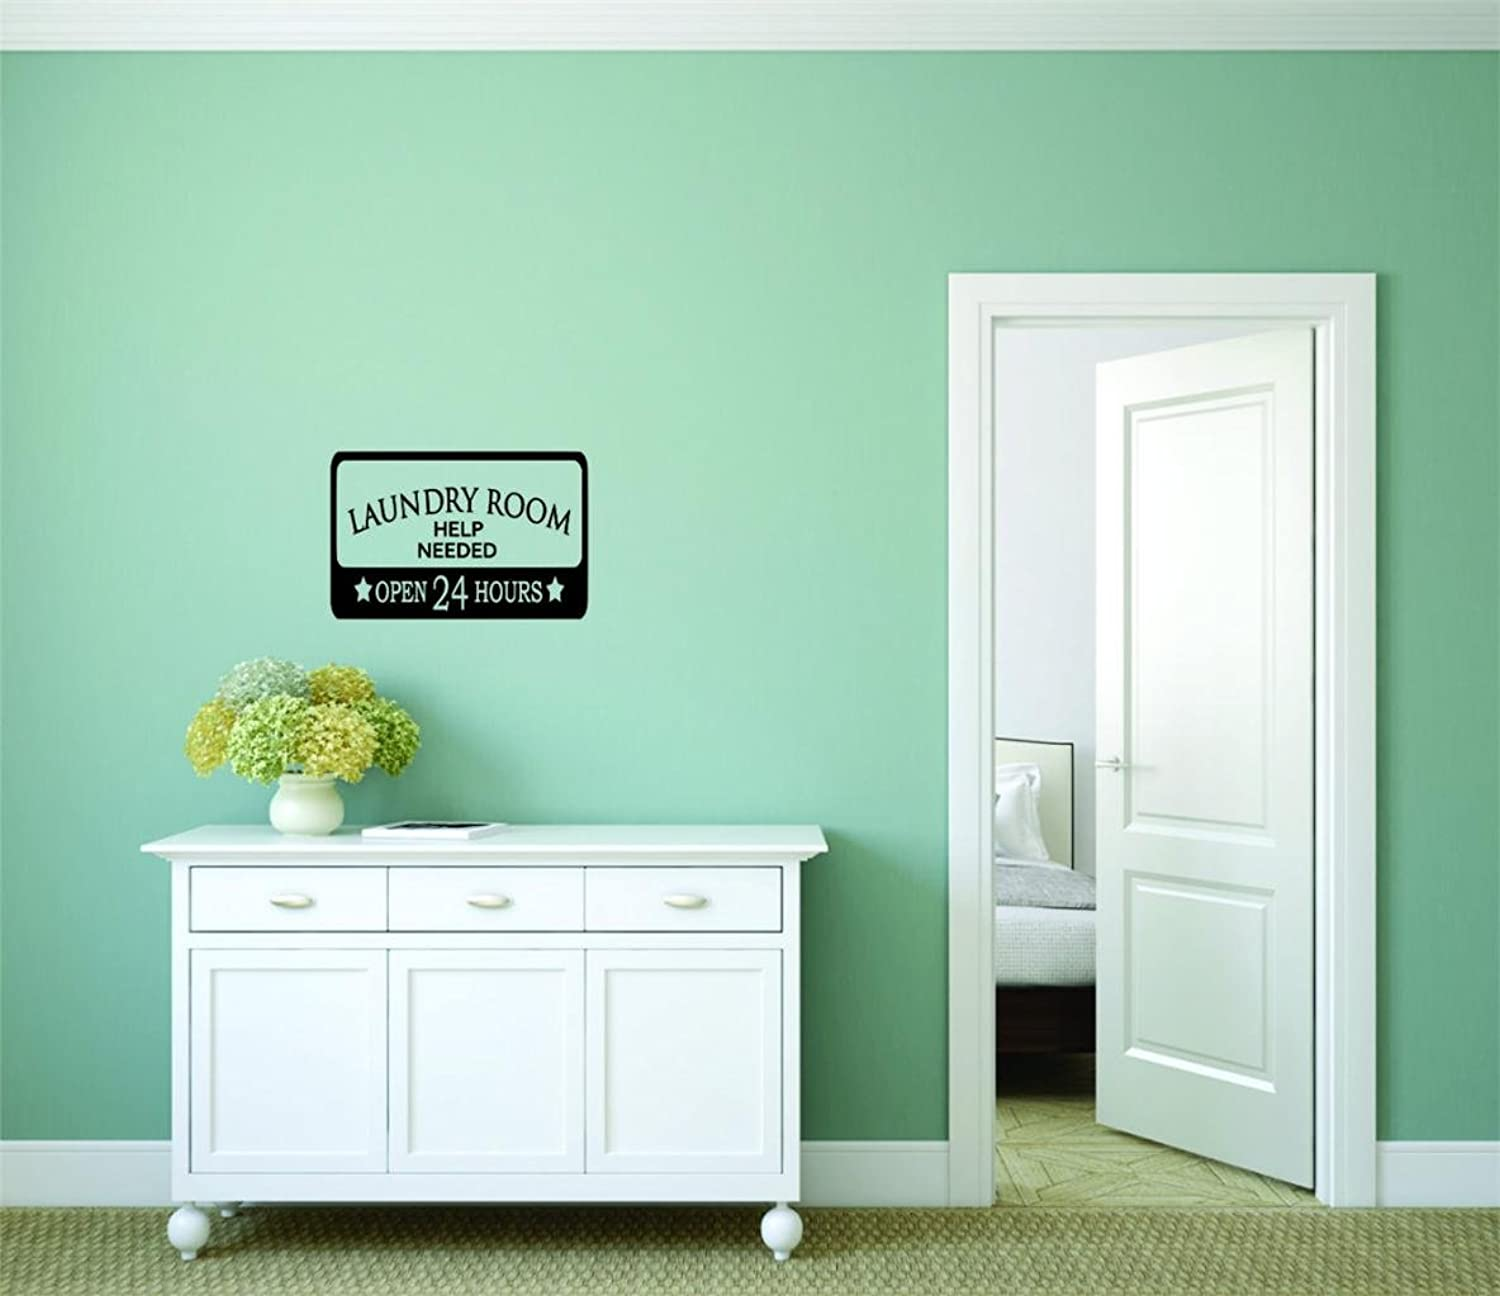 Decal Wall Sticker  Best Selling Cling Transfer  ON SALE NOW   Laundry Apply Within Open Sign Housekeeping Home Decor Picture Art Size  30 Inches x 50 Inches